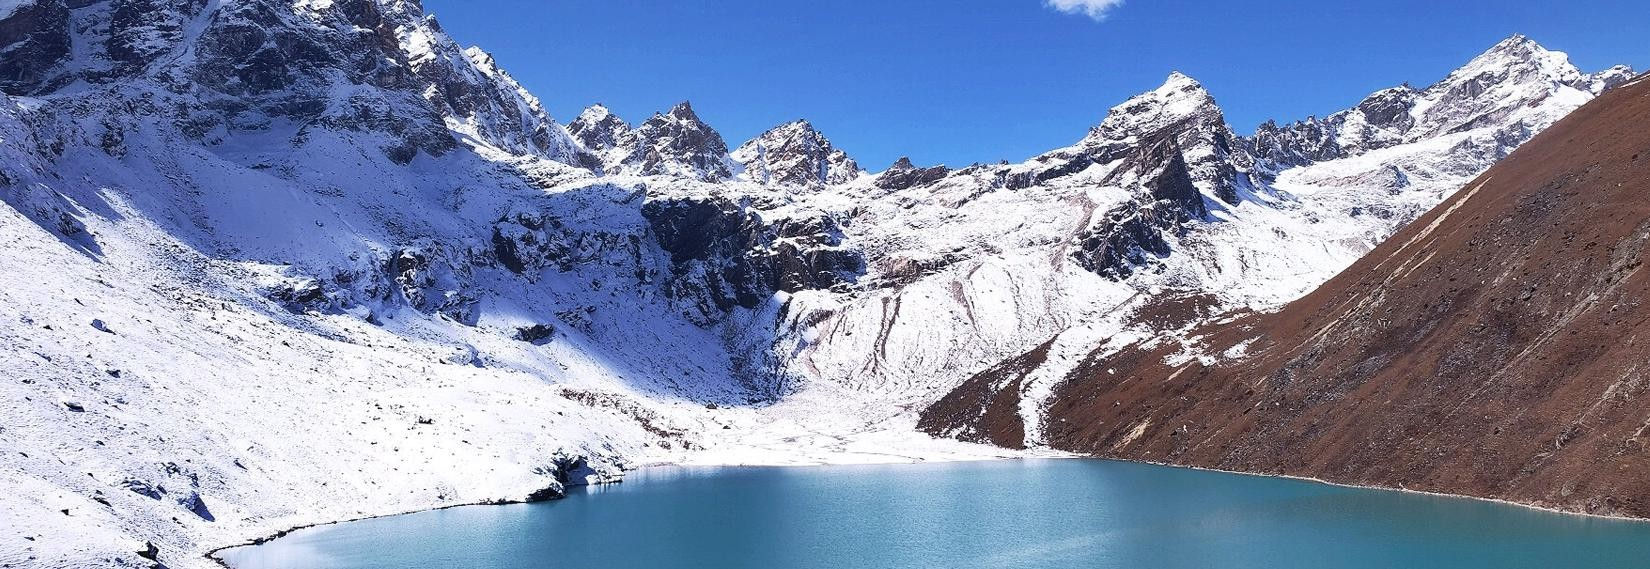 Gokyo Lake located at an altitude of 4,700–5,000 M